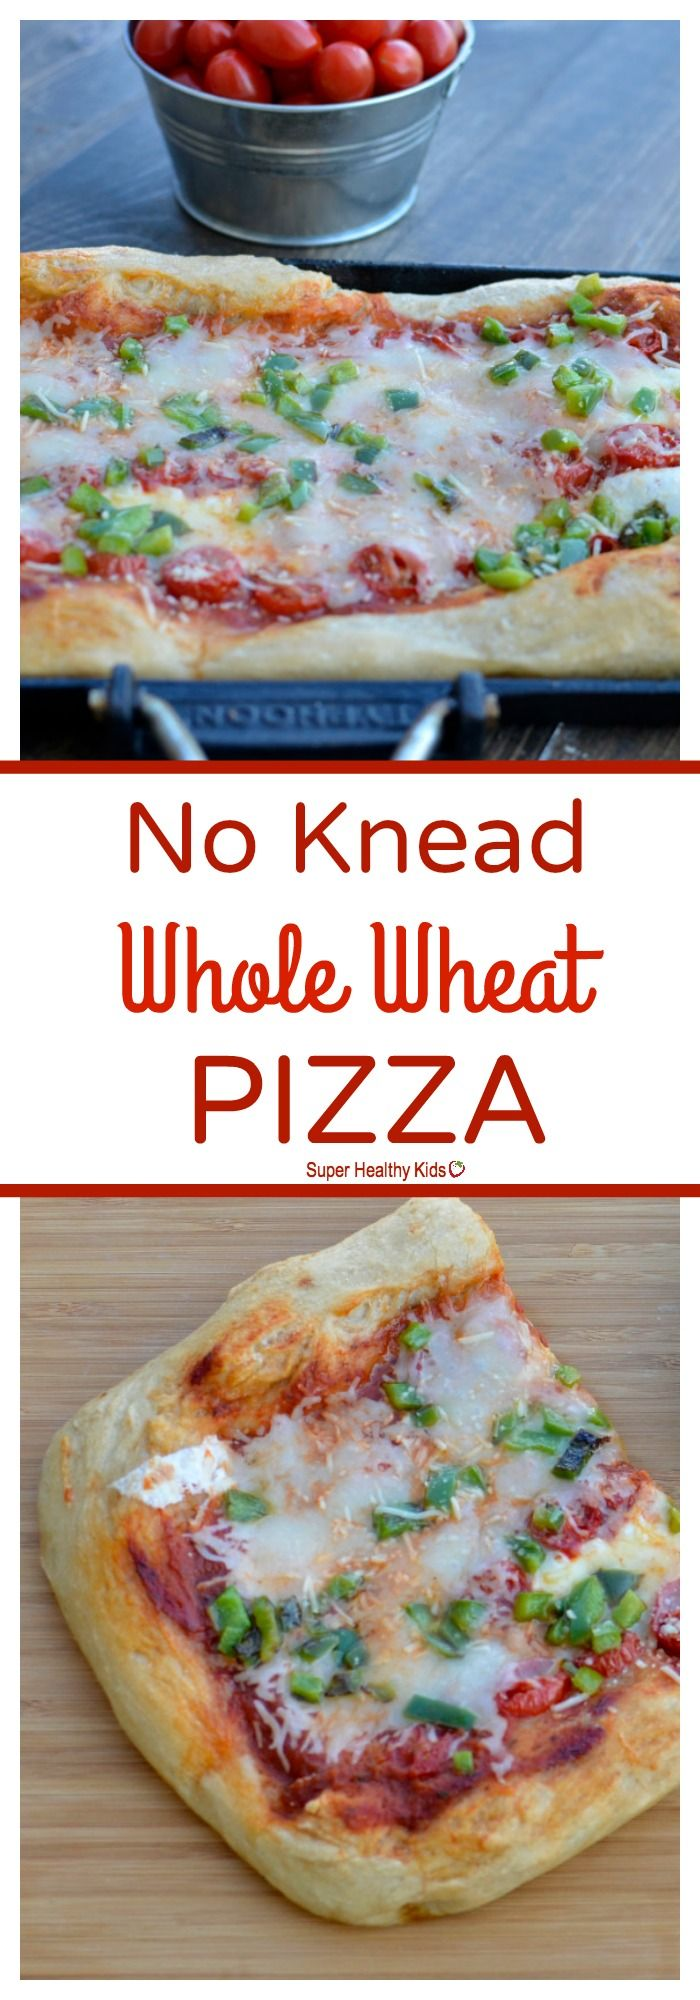 No Knead Whole Wheat Pizza Recipe | Healthy Ideas for Kids